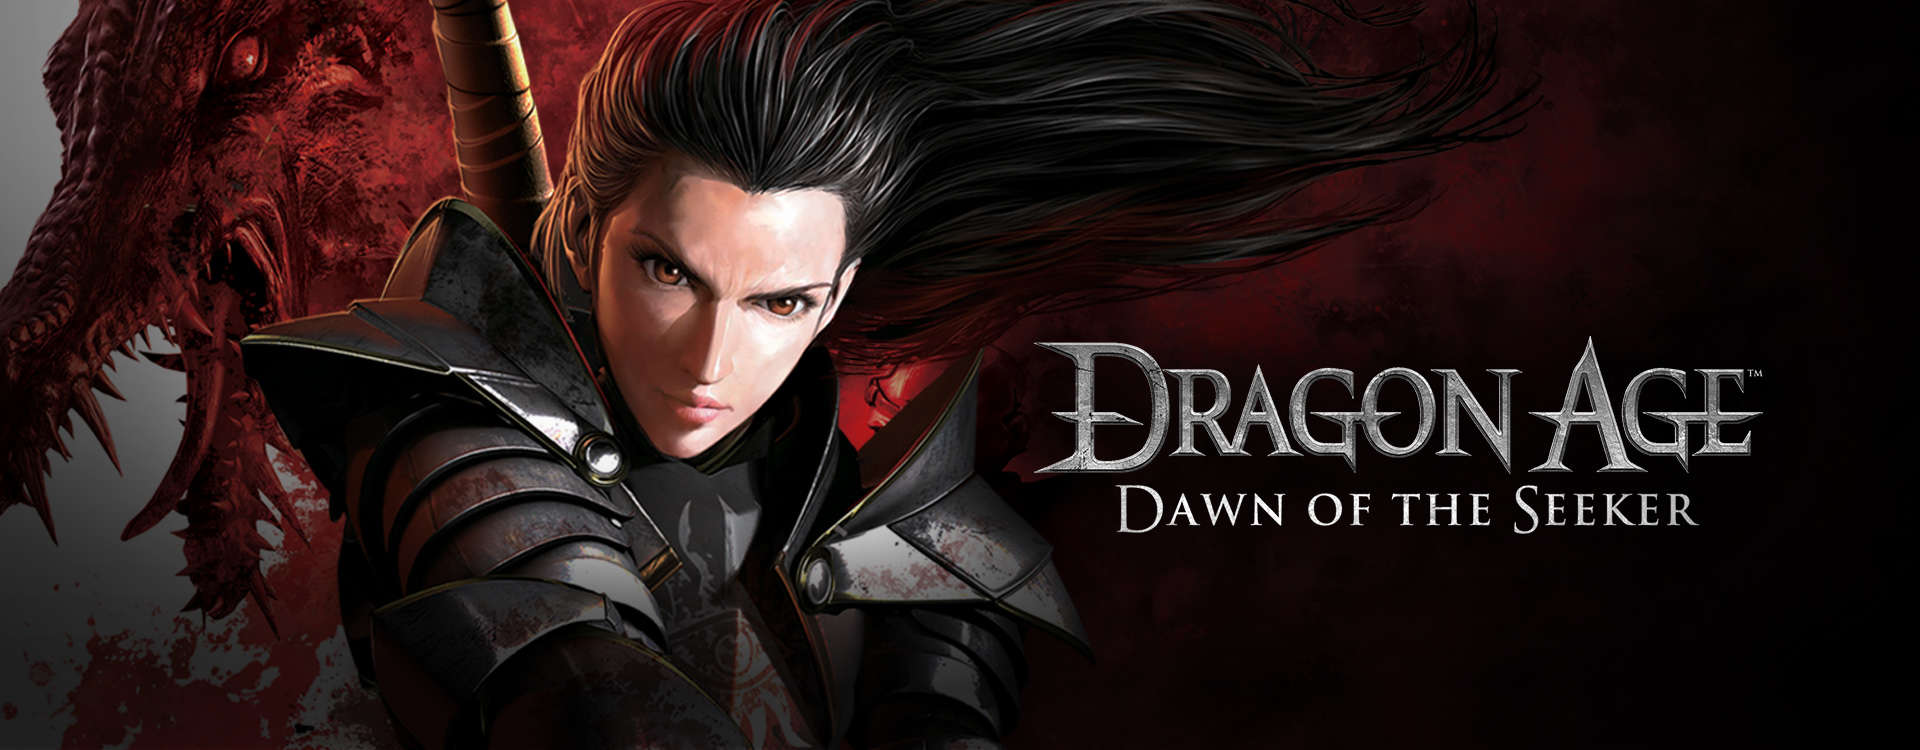 Stream & Watch Dragon Age: Dawn Of The Seeker Episodes ...